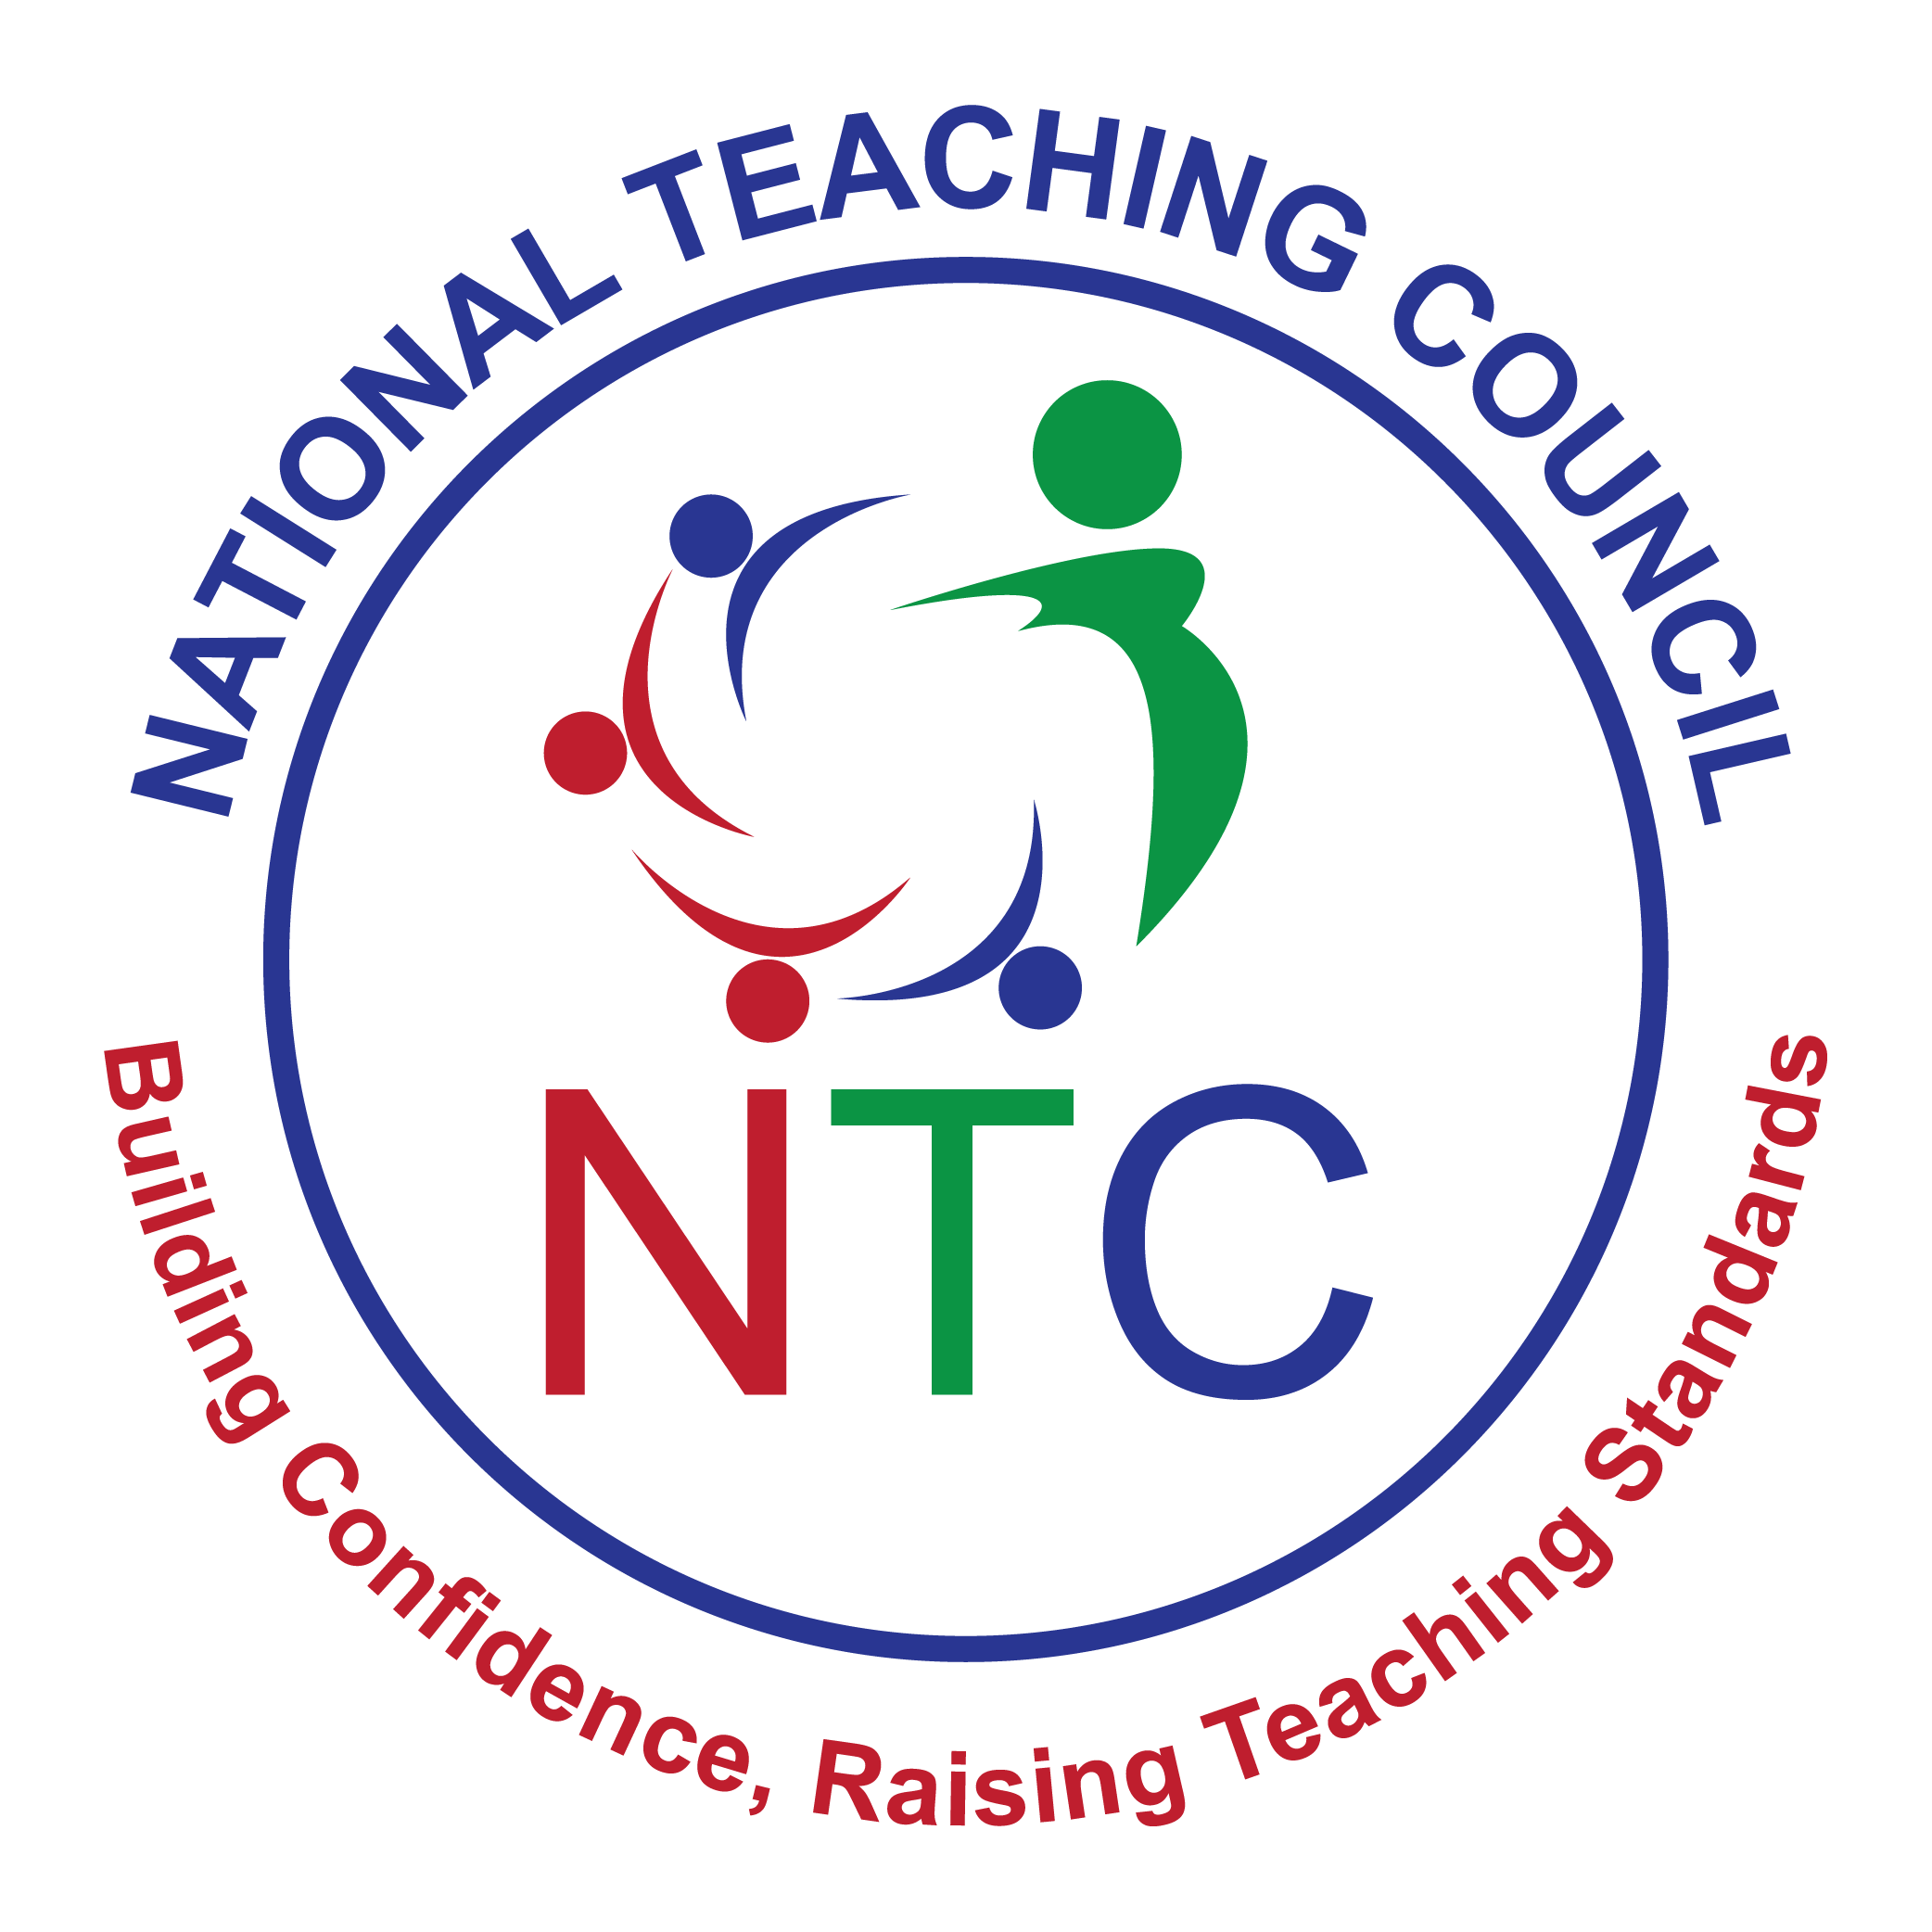 National Teaching Council